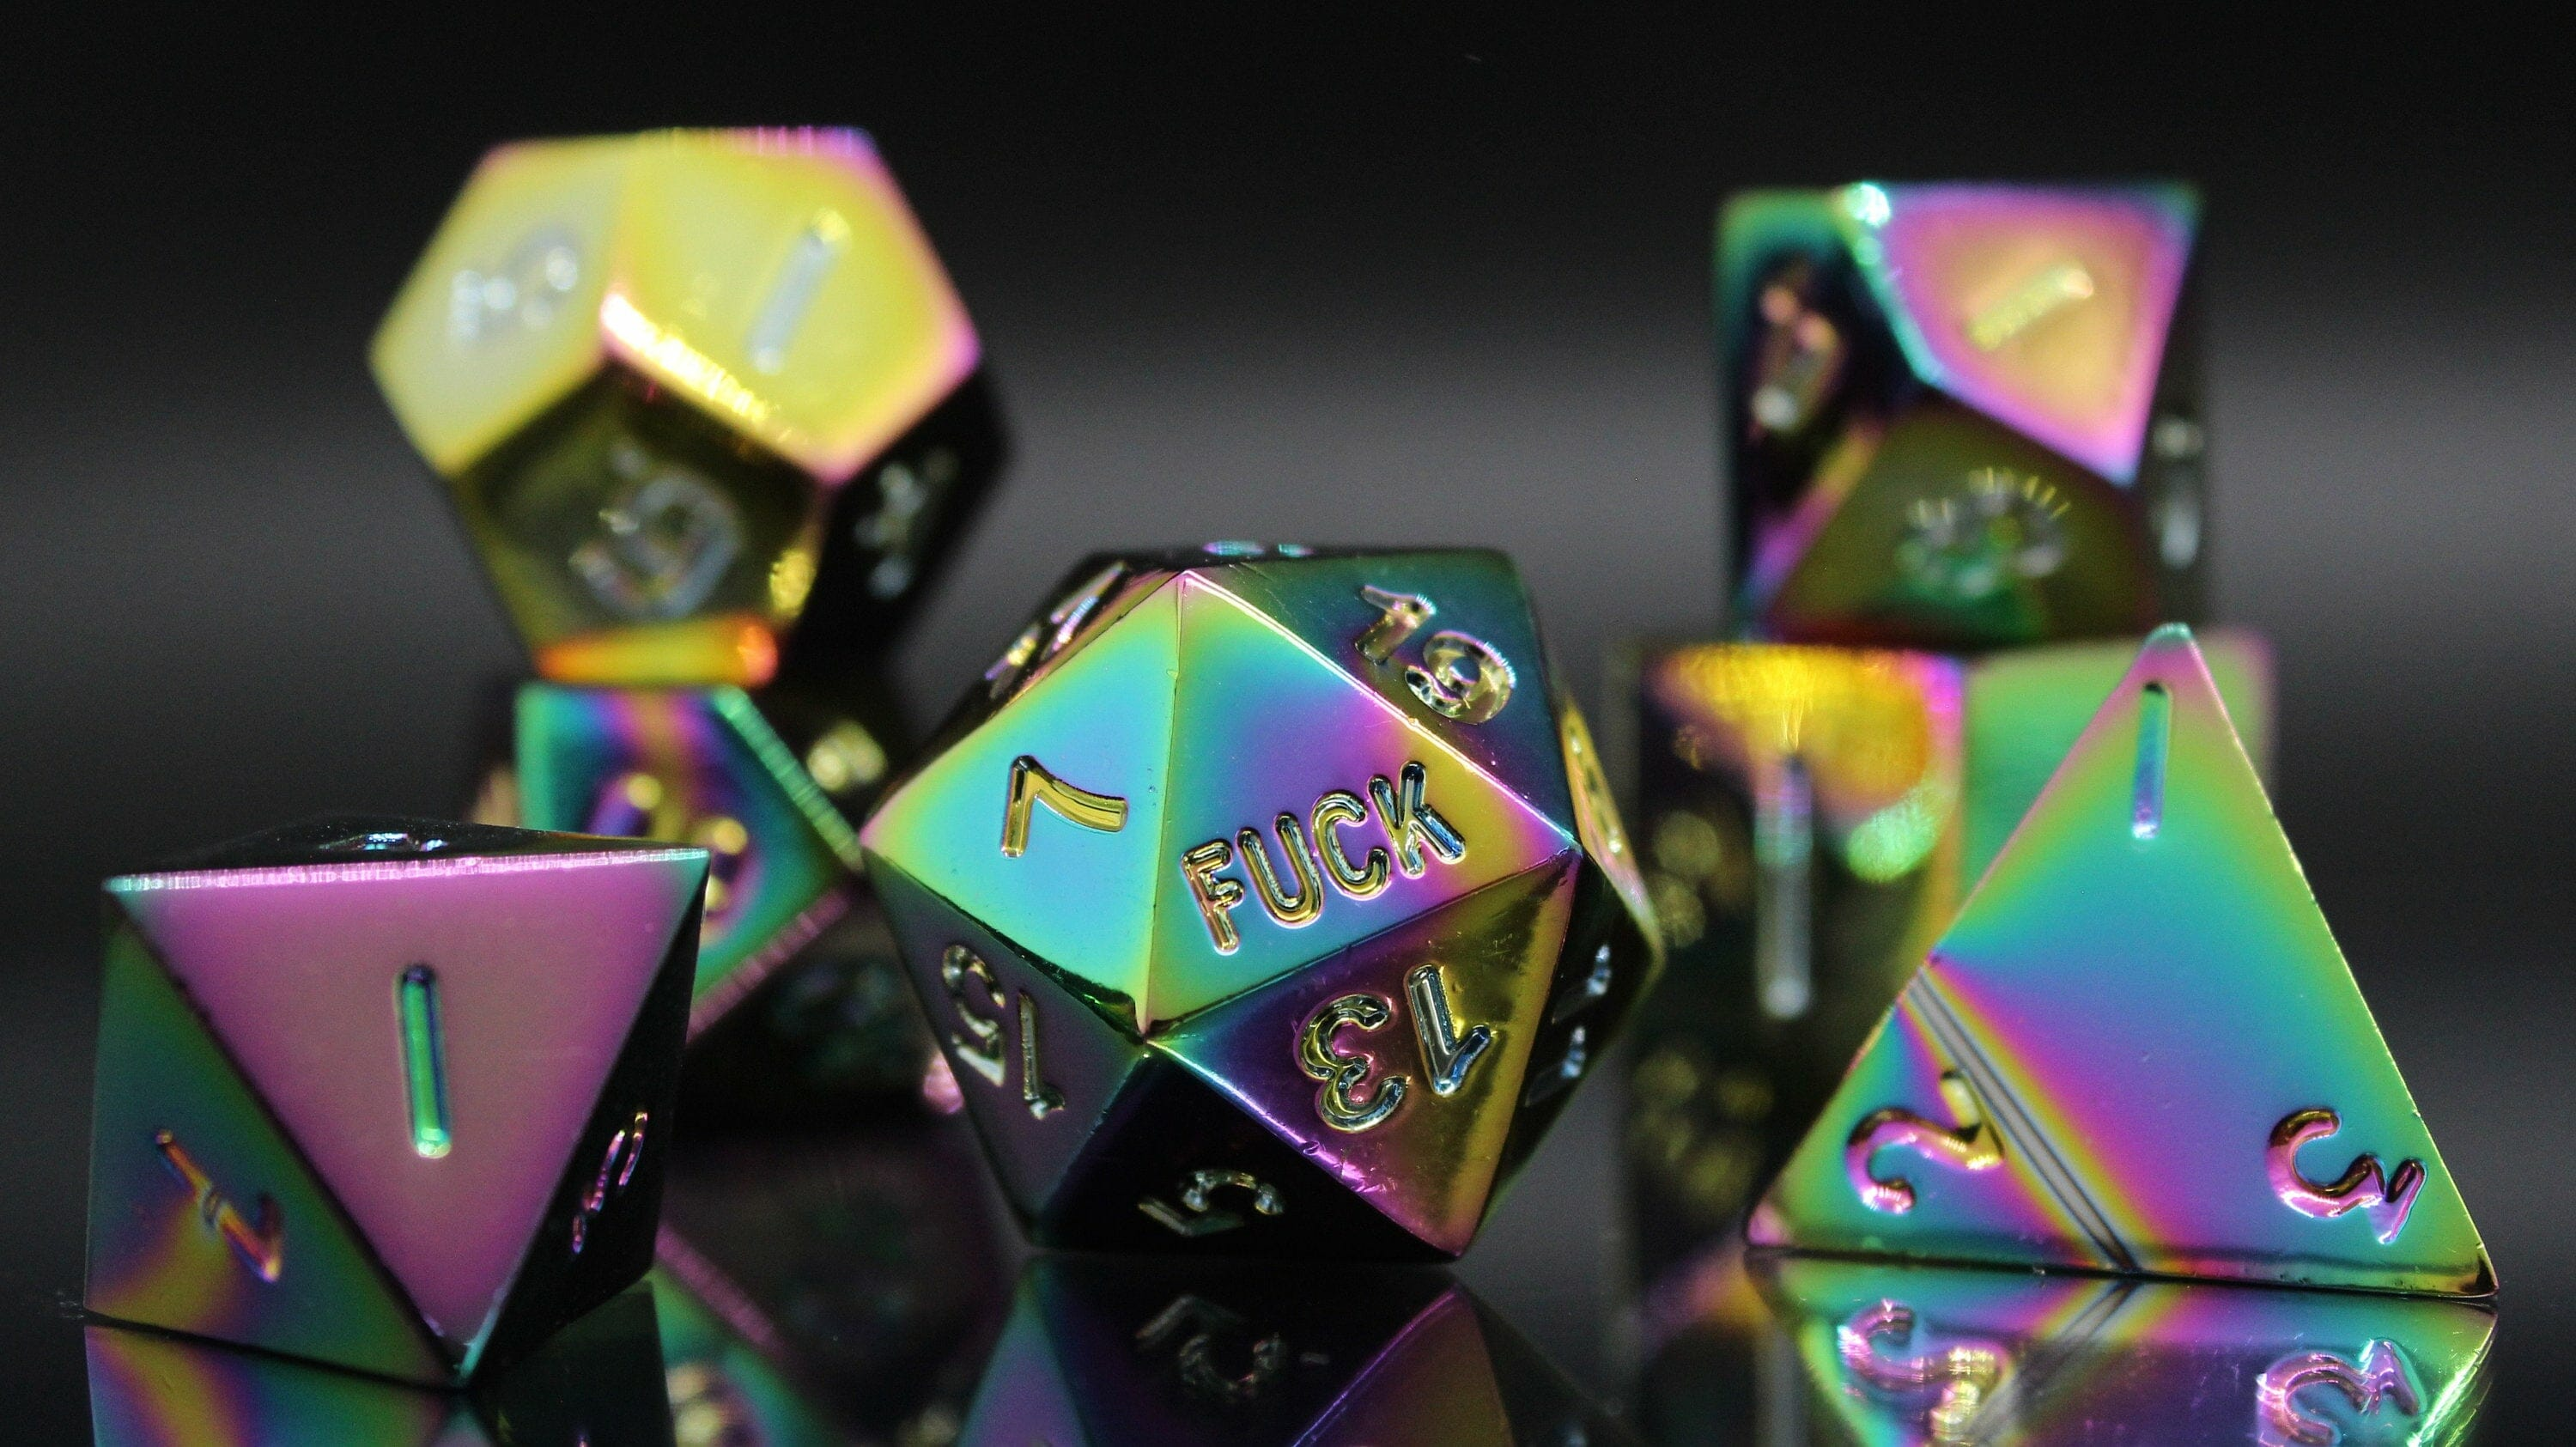 Shiny f*ck dice